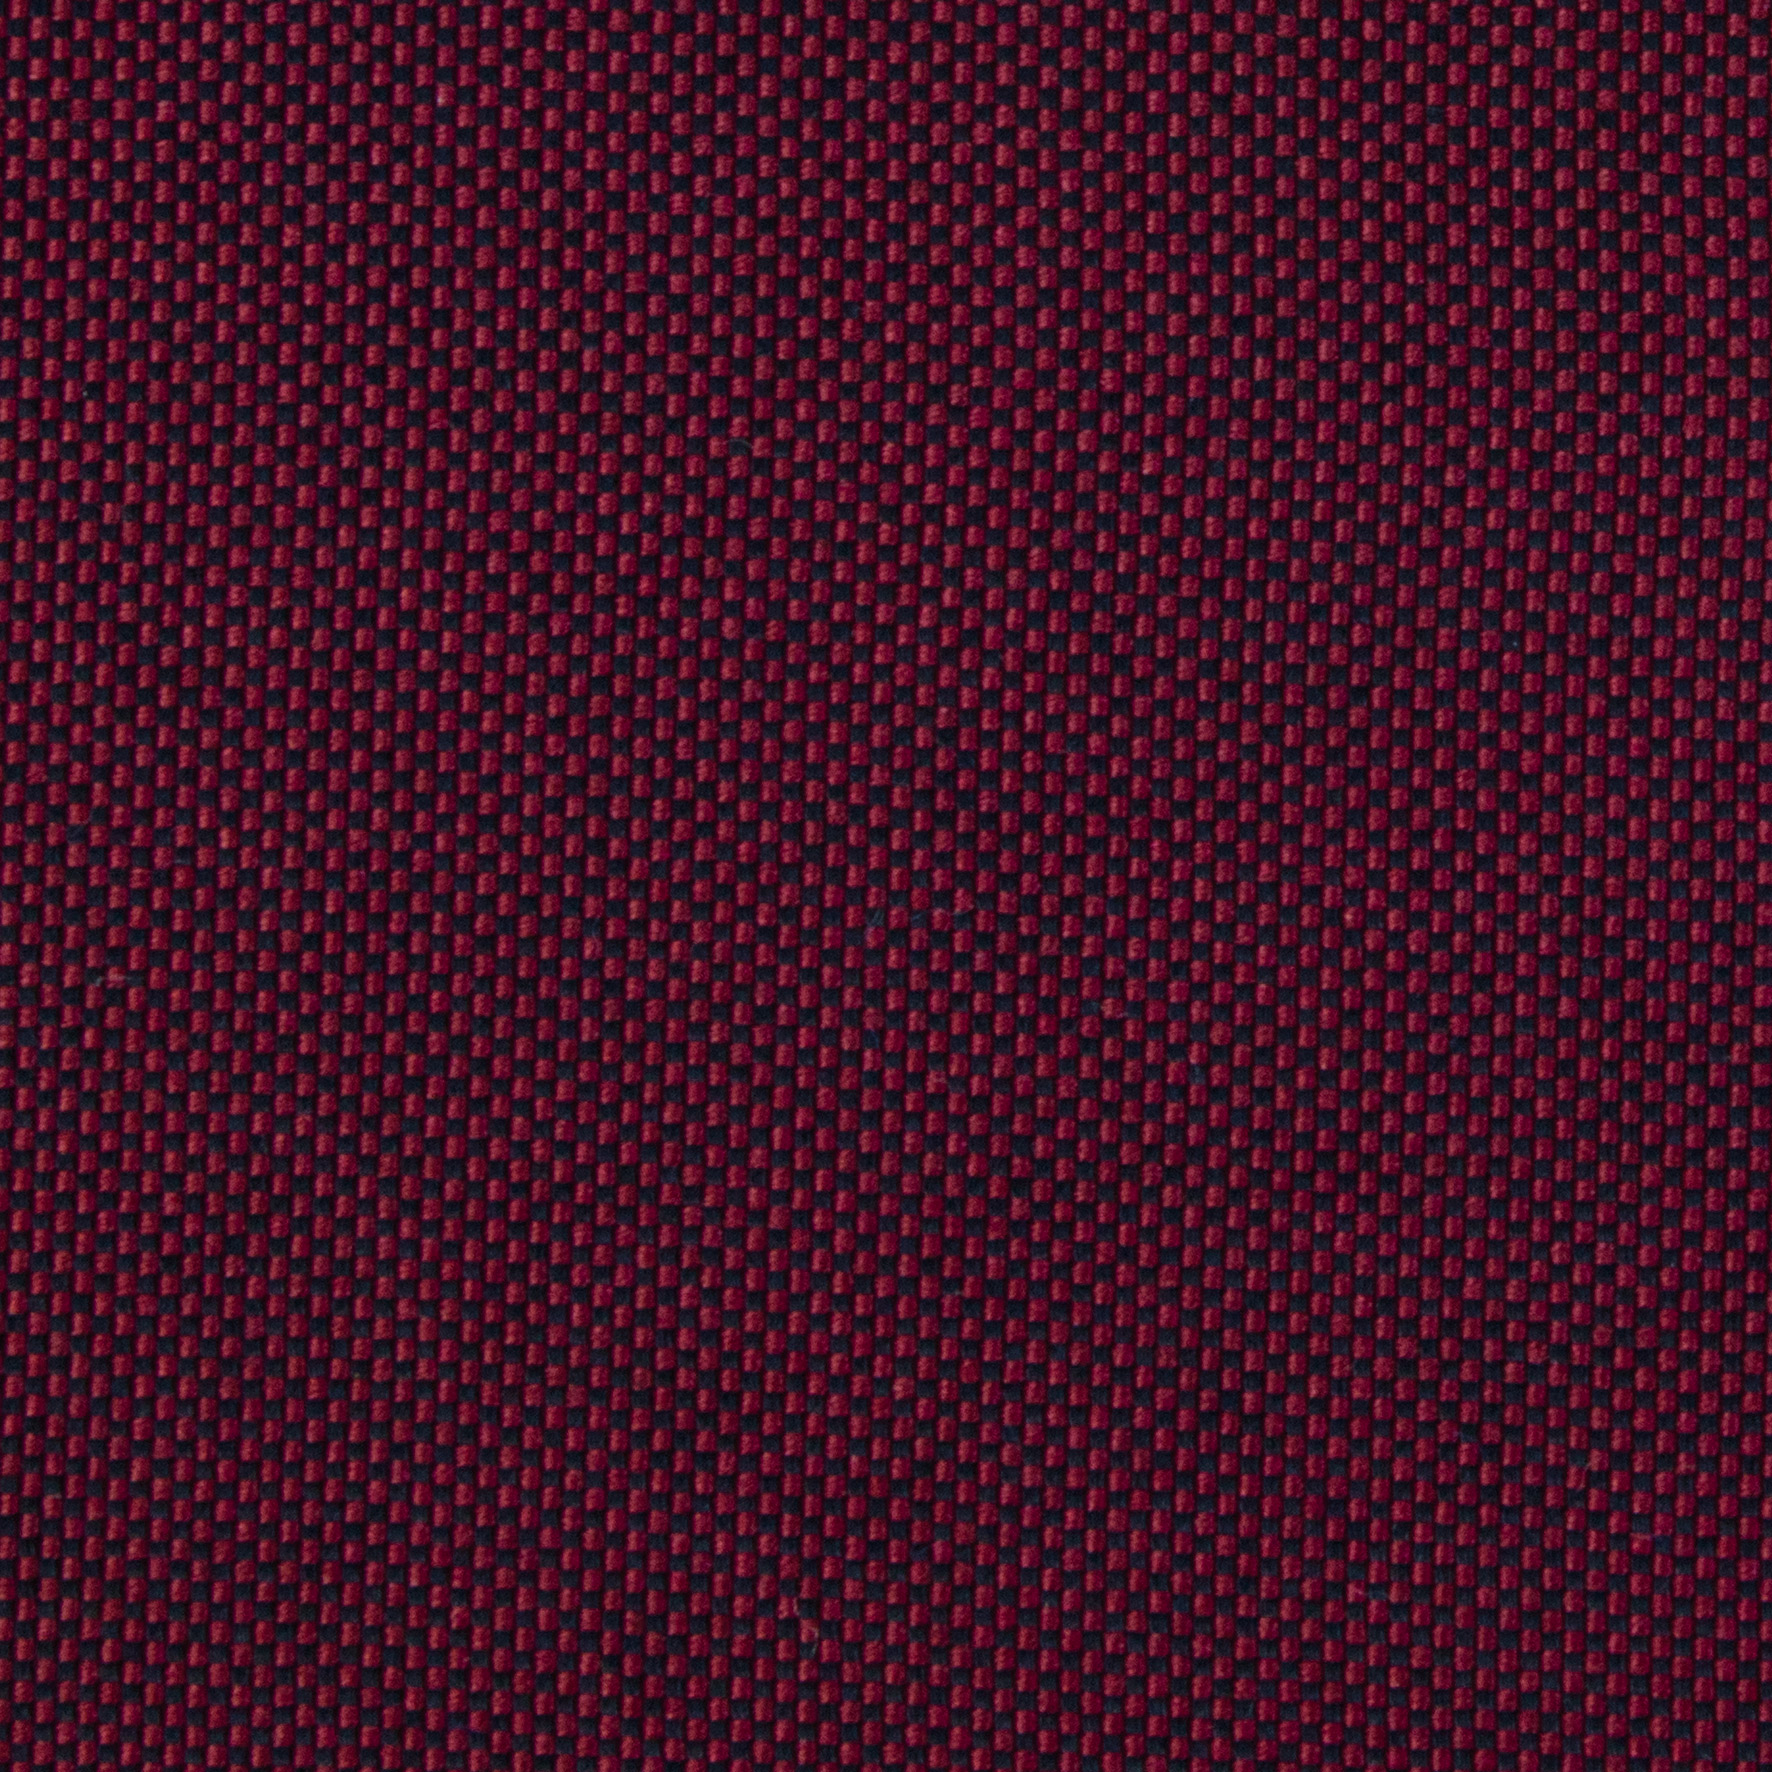 Buy tailor made shirts online - Antonio Range (CLEARANCE) - Burgundy Diamond Weave